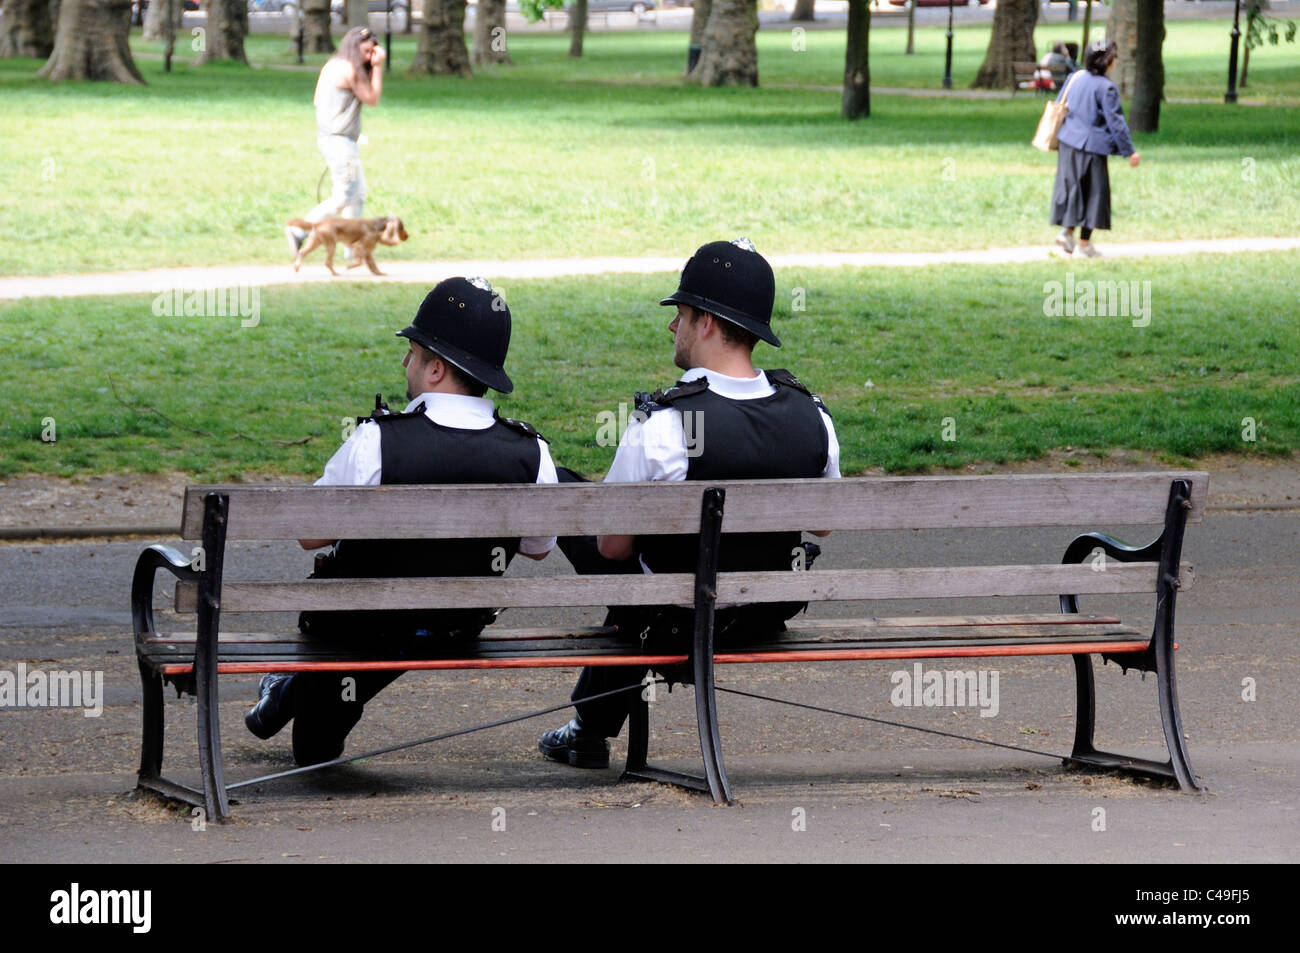 Bobbies sitting on a bench, two Metropolitan police officers watching activities on Highbury Fields in summer London - Stock Image